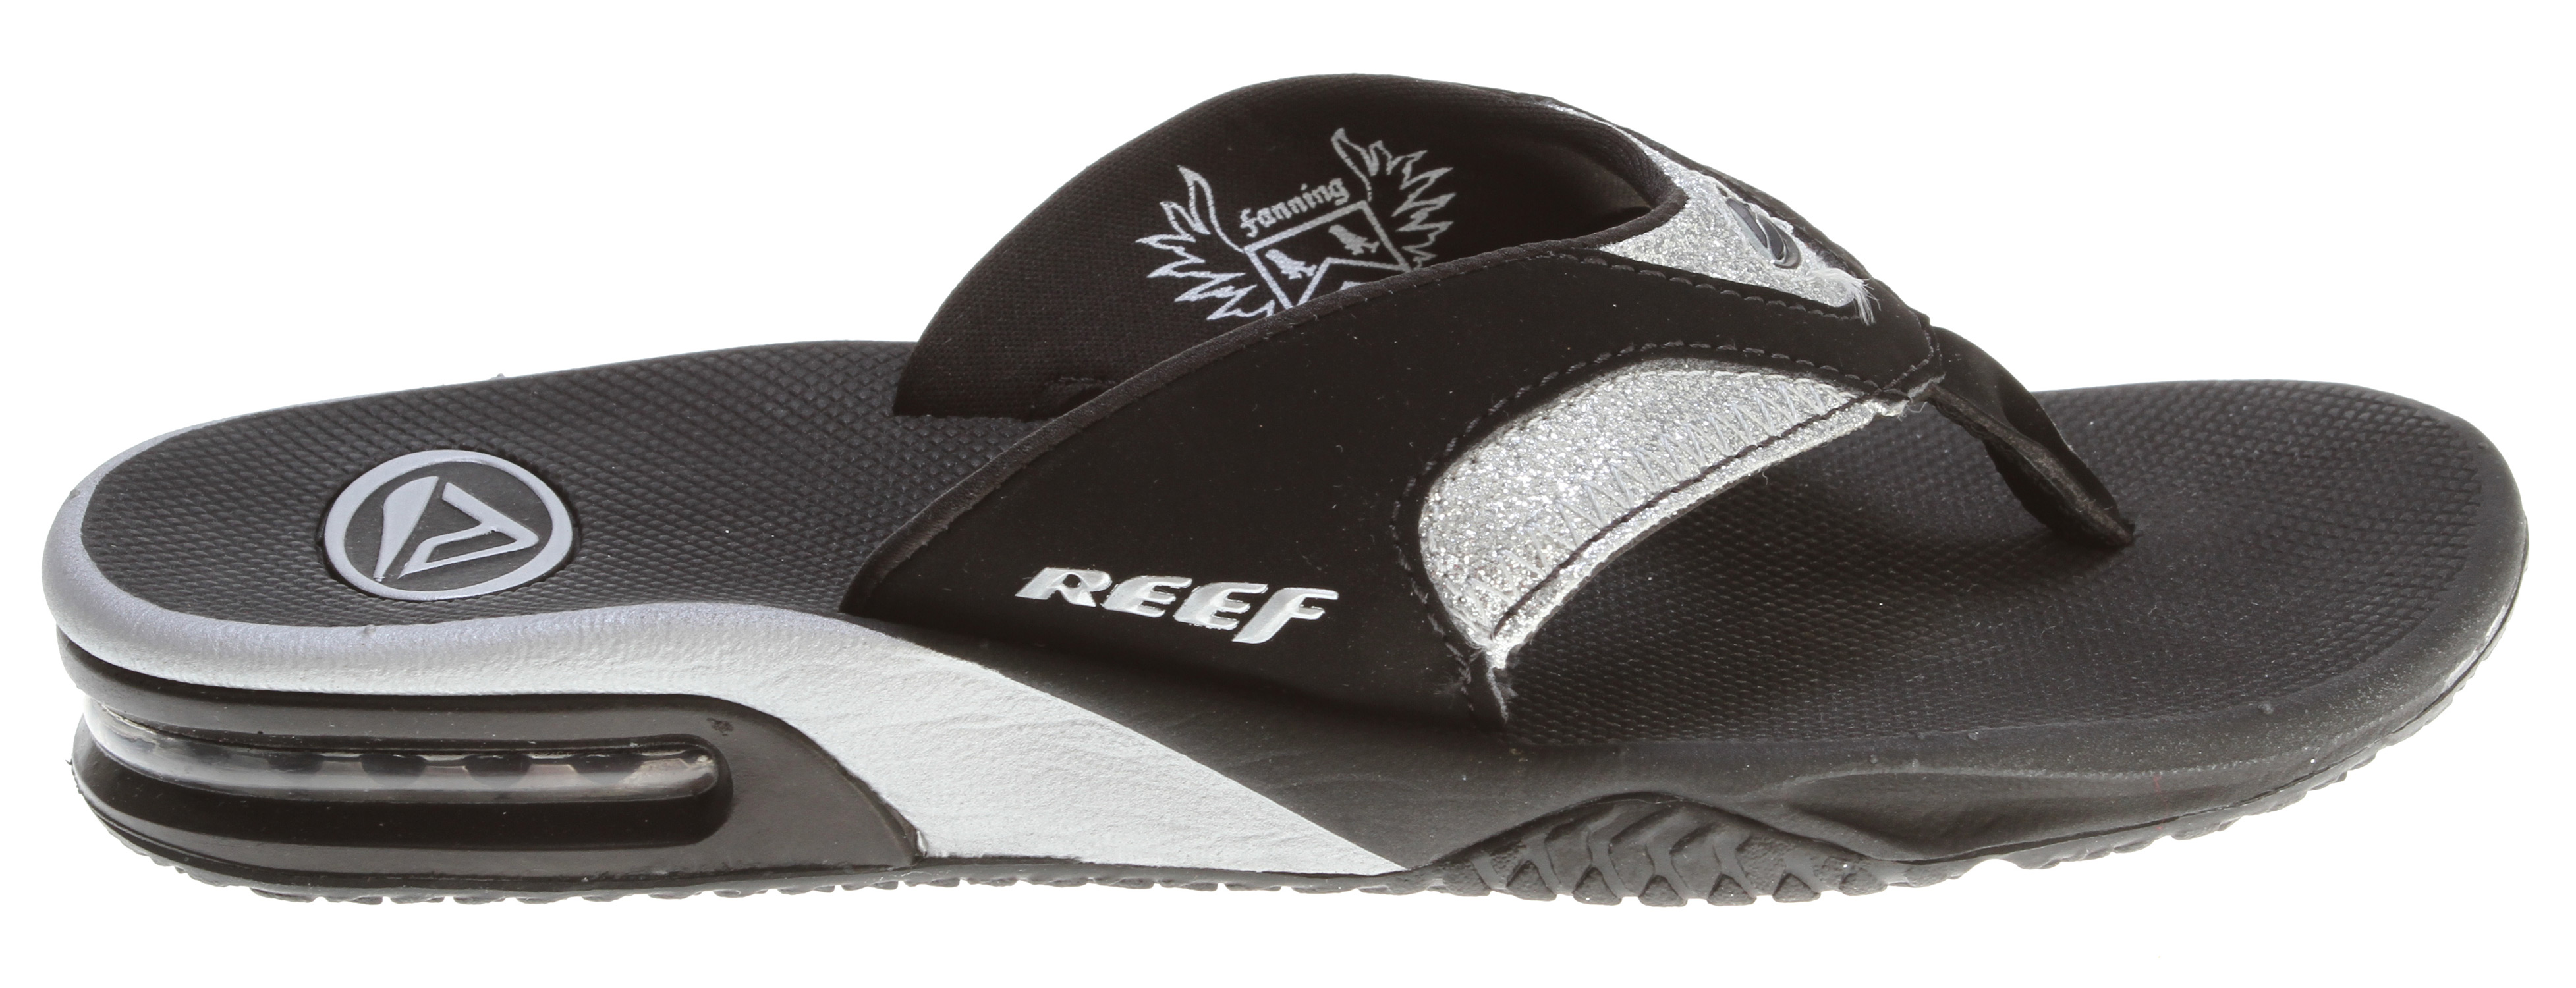 Surf Key Features of the Reef Fanning Luxe Sandals: Mick fanning's signature sandal Synthetic nubuck upper with sparkle detail Contoured eva footbed with anatomical arch support Full 360 degree heel airbag enclosed in soft polyurethane Church key to open your soda bottle - $37.95